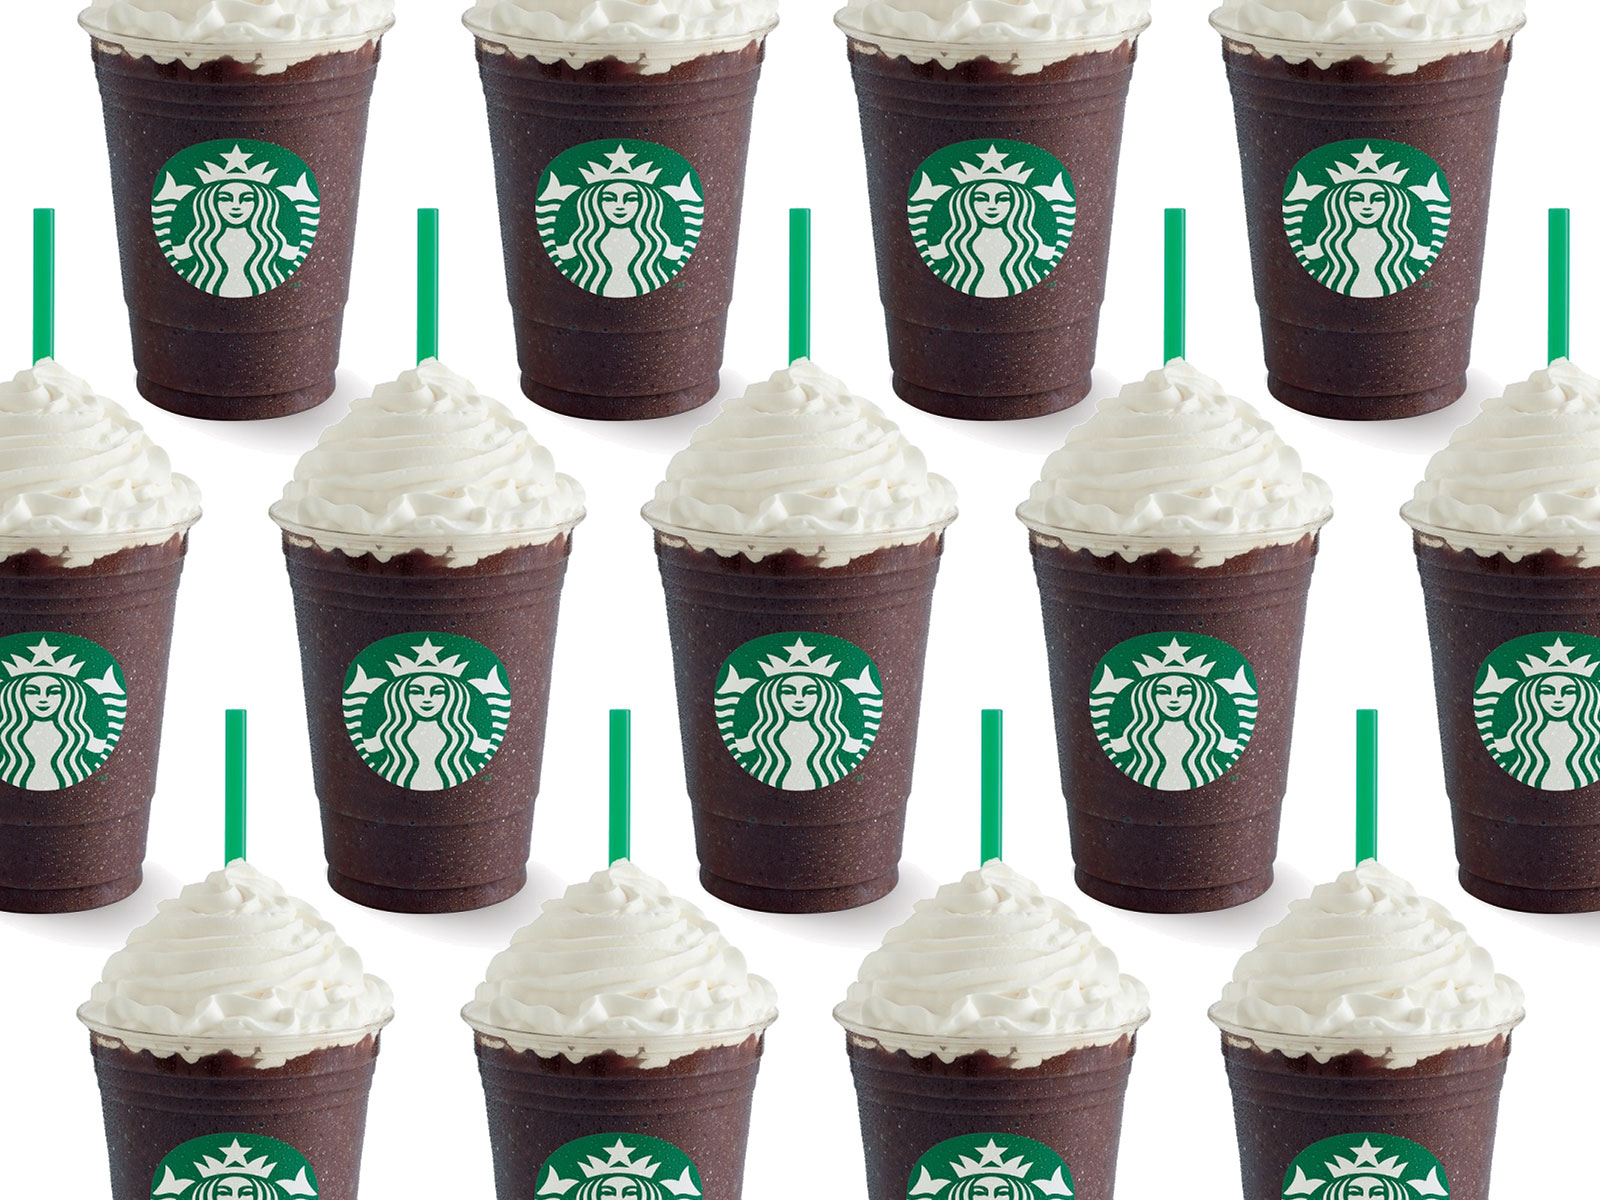 EC: Starbucks' Dark Chocolate Frappuccino Is Exclusive to Target